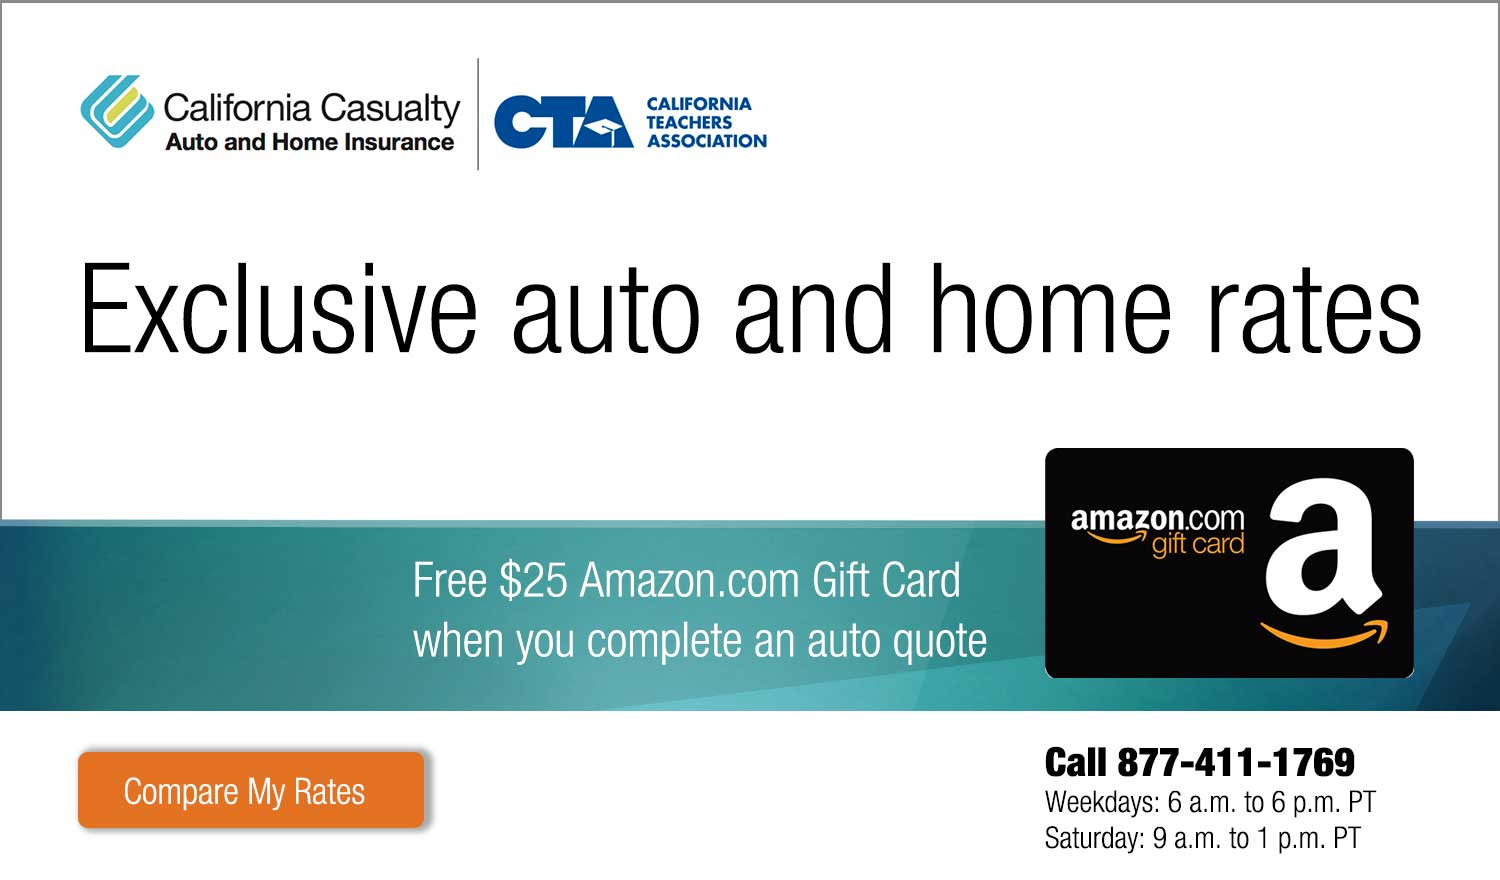 California Casualty Auto and Home Insurance: Exclusive auto and home rates for CTA members. Free $25 Amazon.com Gift Card when you complete an auto quote.